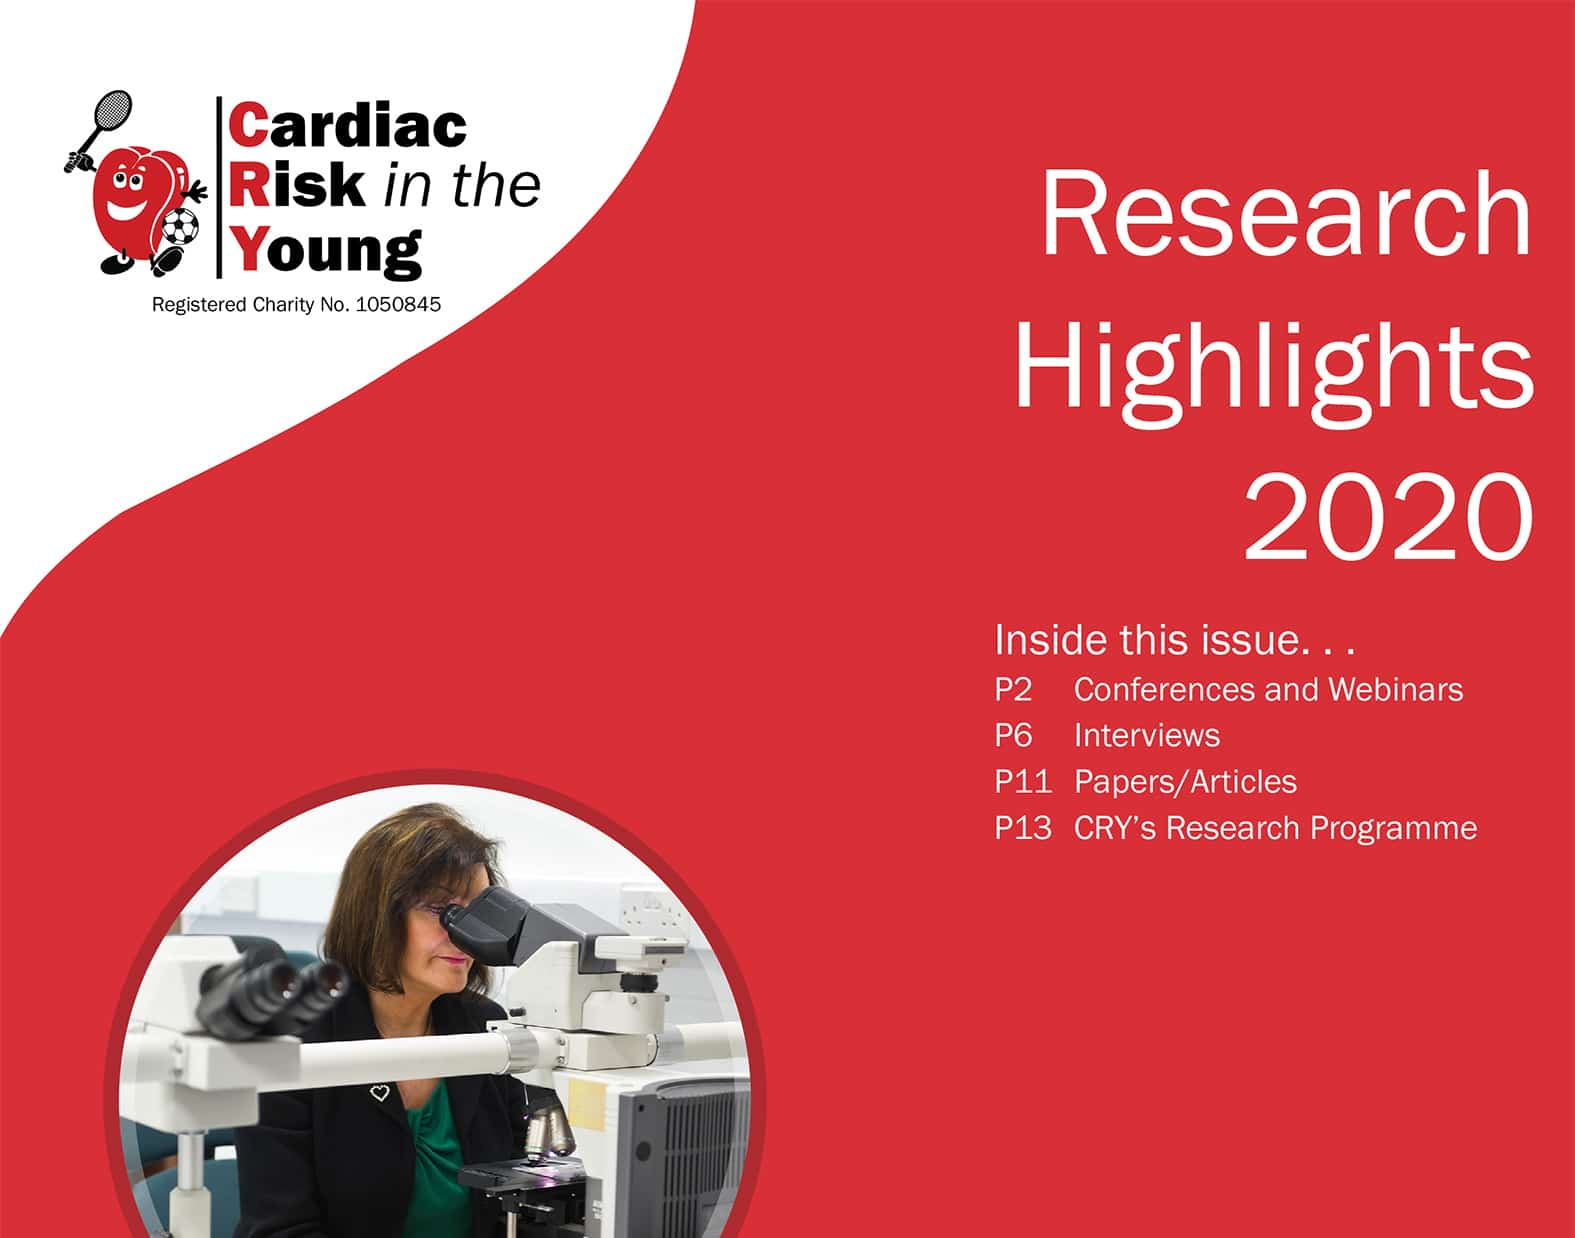 CRY Research Highlights 2020